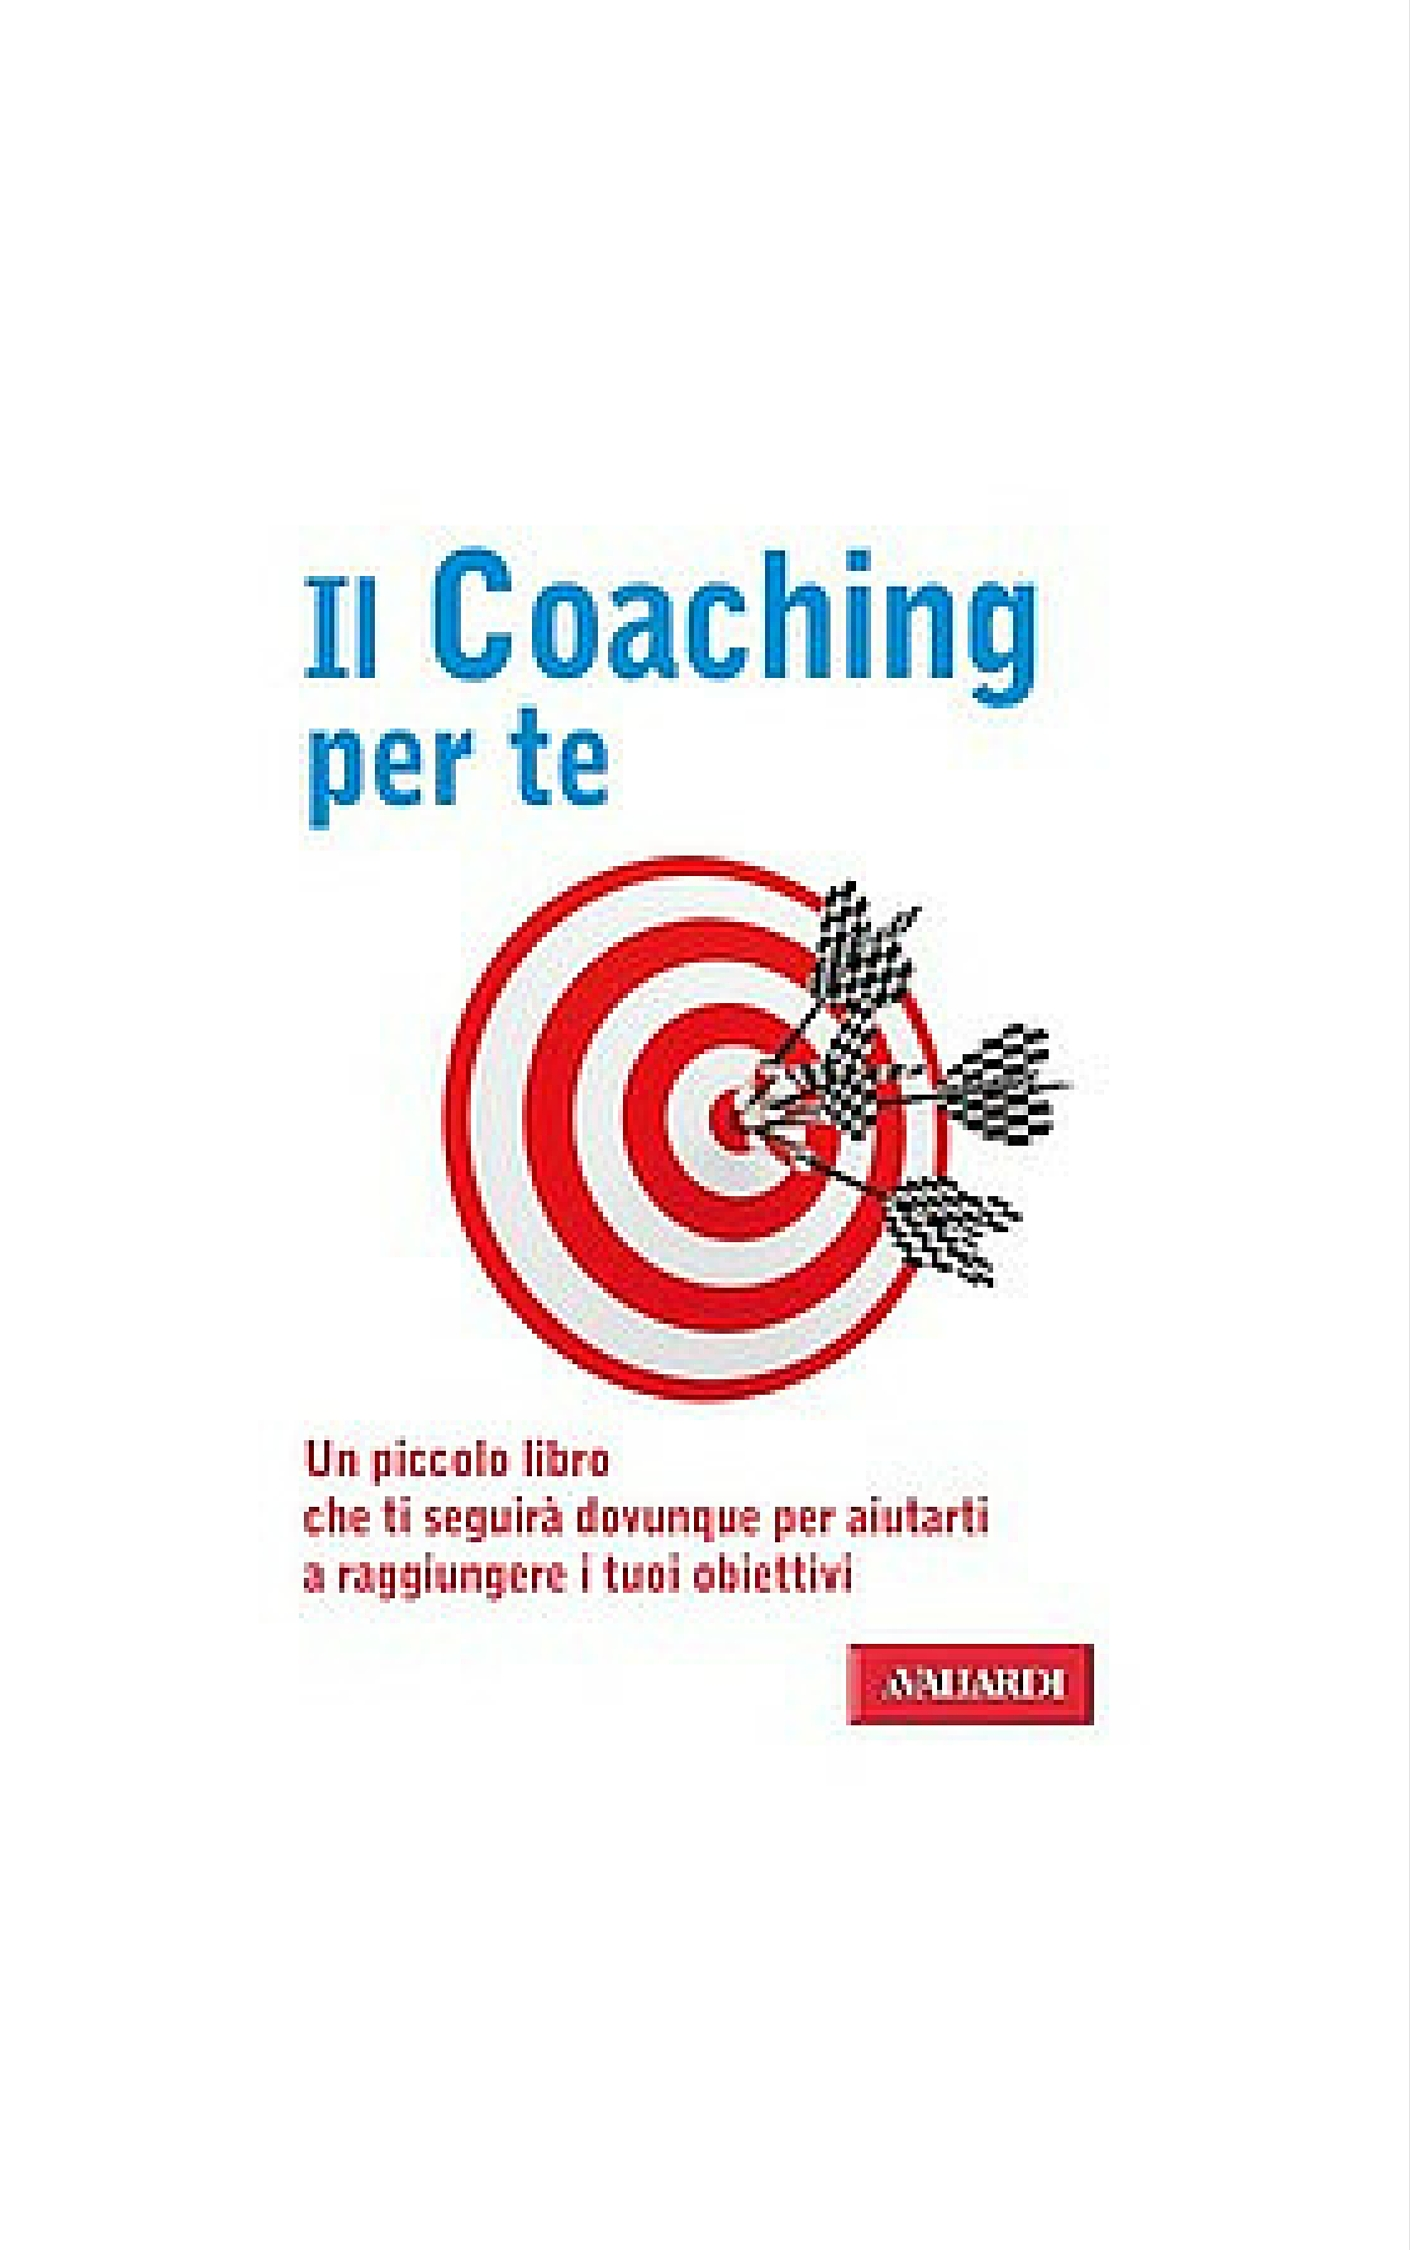 coachingperteSITO